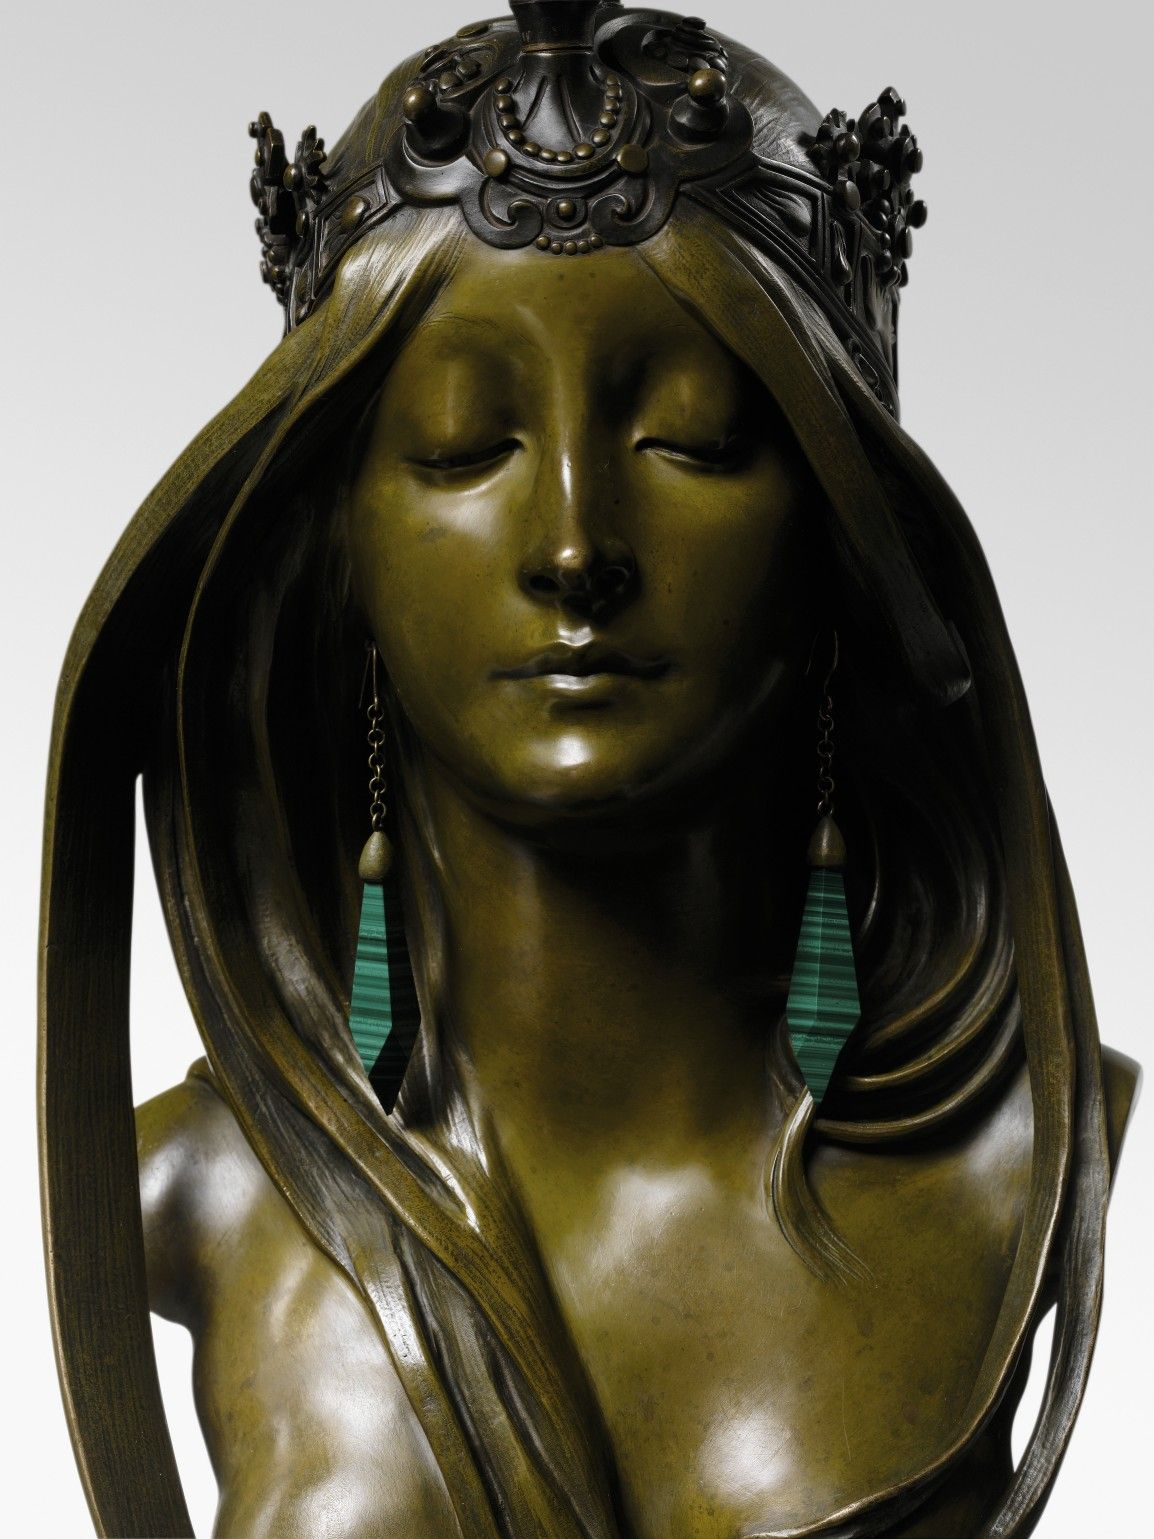 The Rediscovery of a Rare Bust by Art Nouveau Master Alphonse Mucha